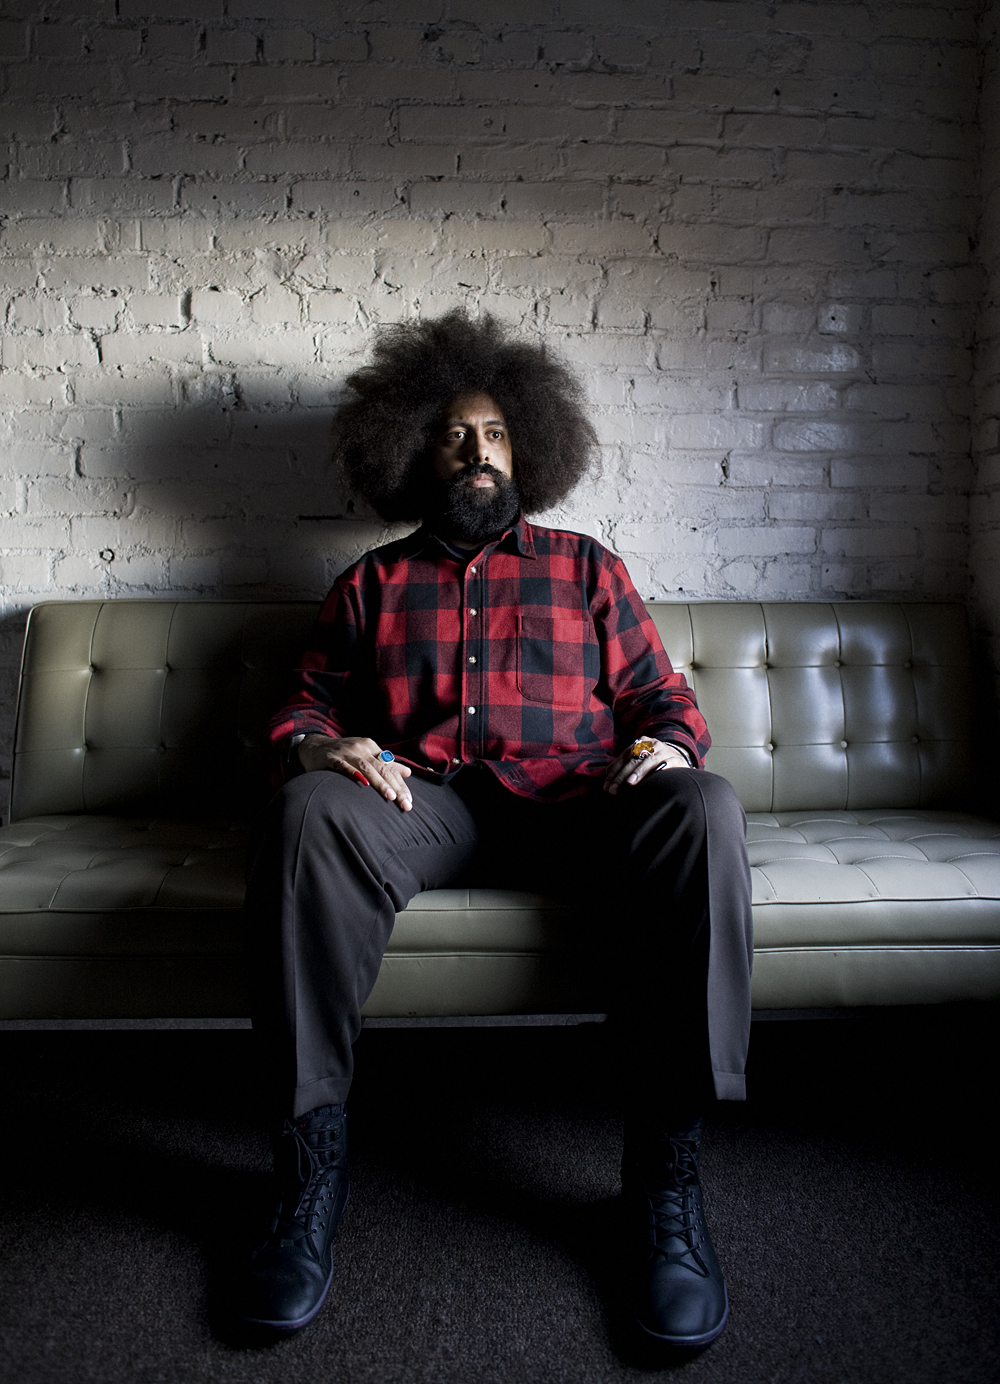 Infused with sonic landscapes performed live by Reggie Watts,  Dutch A/V  is a live-edited environmental film that seeks to replicate the first hand experience of being a flâneur in another city. Reggie – with collaborator/playwright Tommy Smith and Seattle journalist Brendan Kiley – traveled to Holland and shot over 26 hours of footage, exploring its cities using spy-glasses that recorded everything they saw and heard.  Dutch A/V  seeks to re-present this footage using projection technology and stereophonic sound, turning the interior space into portals to a foreign landscape thousands of miles away.   Photo Credit: Noah Kalina